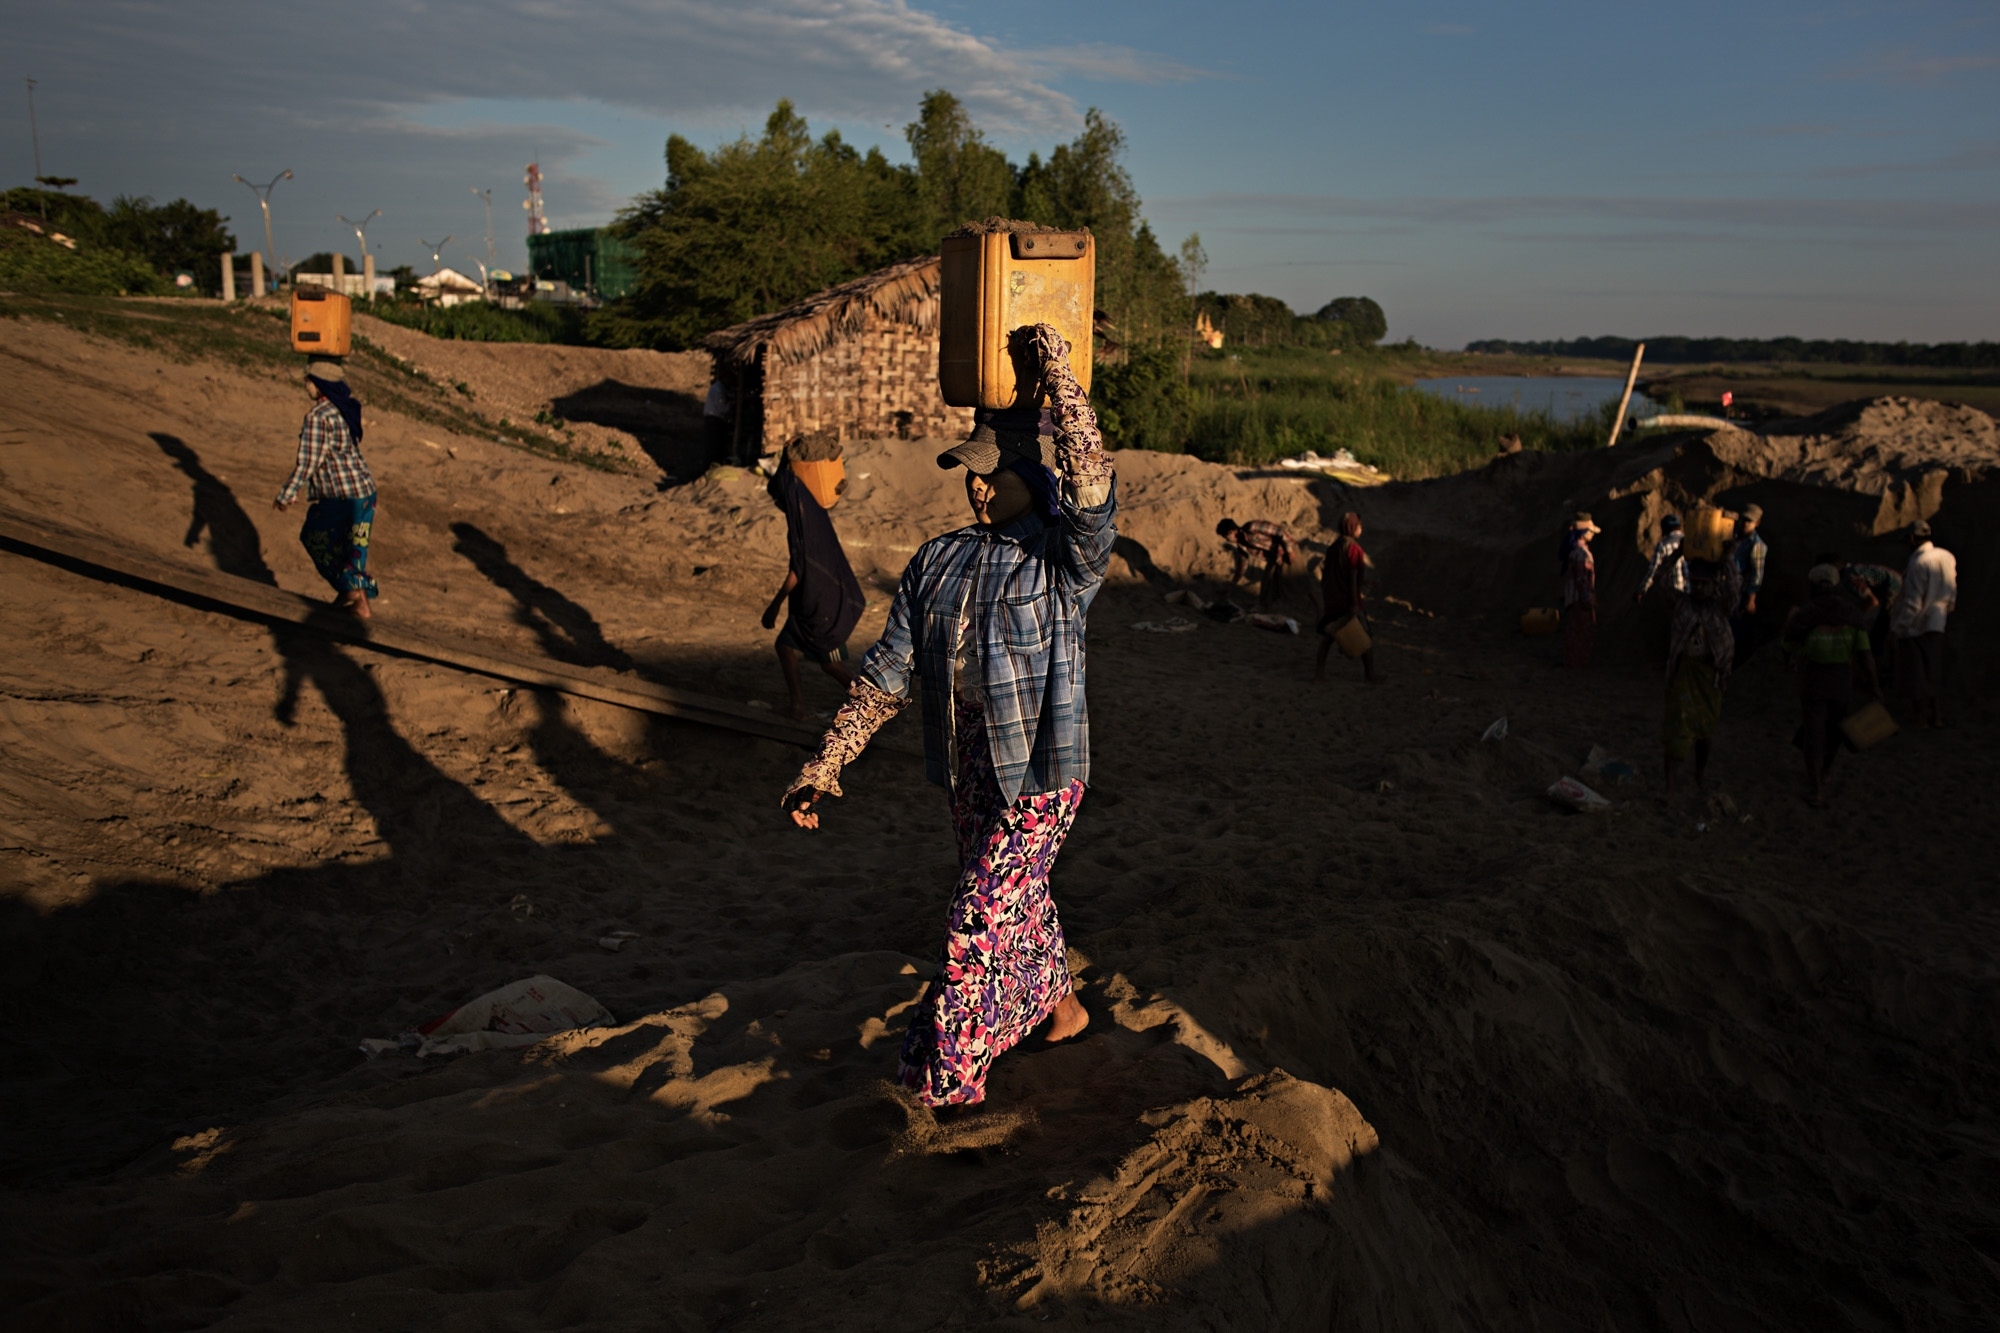 A woman carries sand to a truck. Sand mining is a huge industry and most of it is unregulated, leading to a lot of environmental damage.